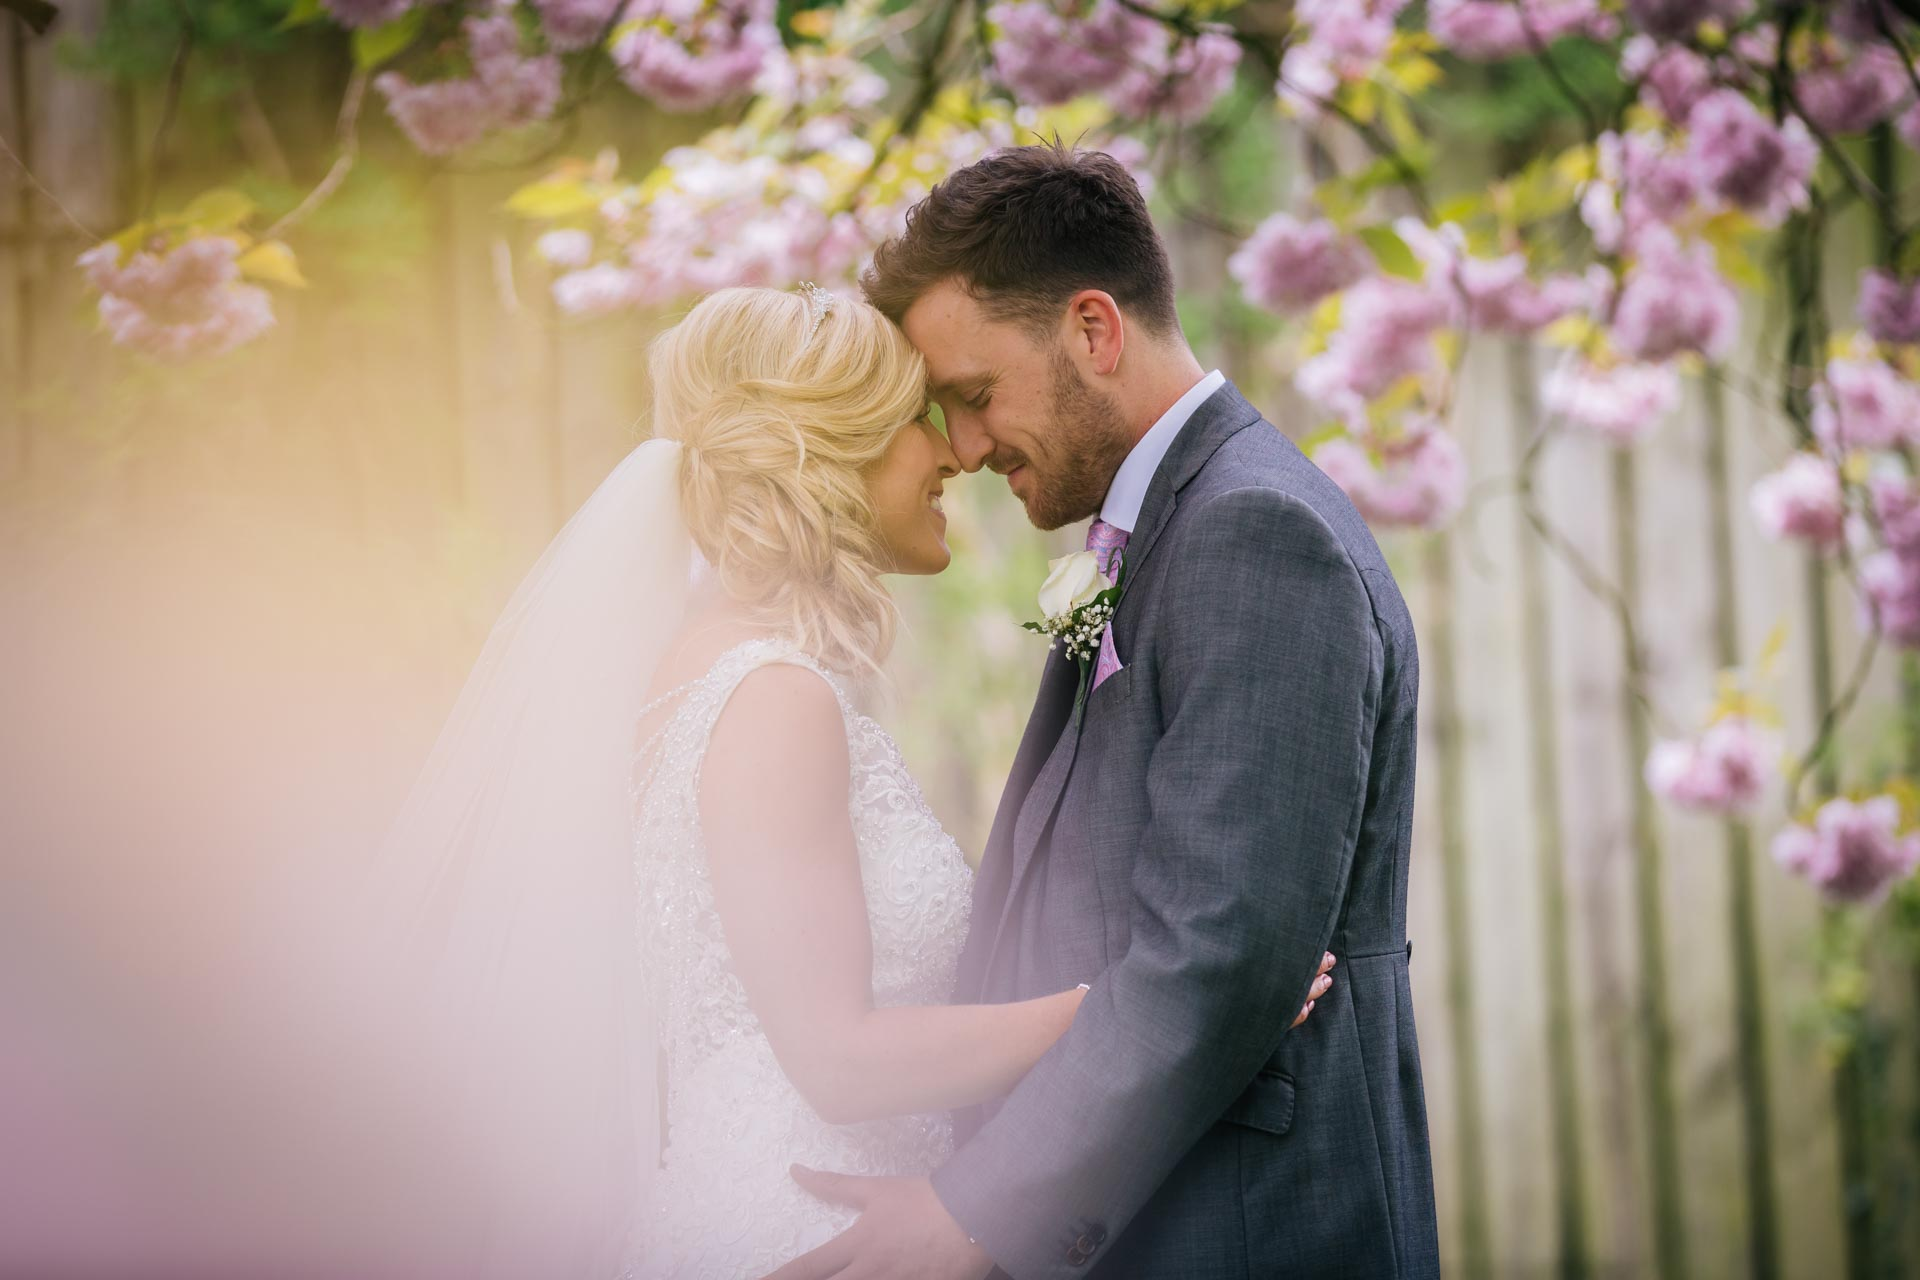 Becky & Dayle's Spring wedding. Rustic wedding in Cheshire